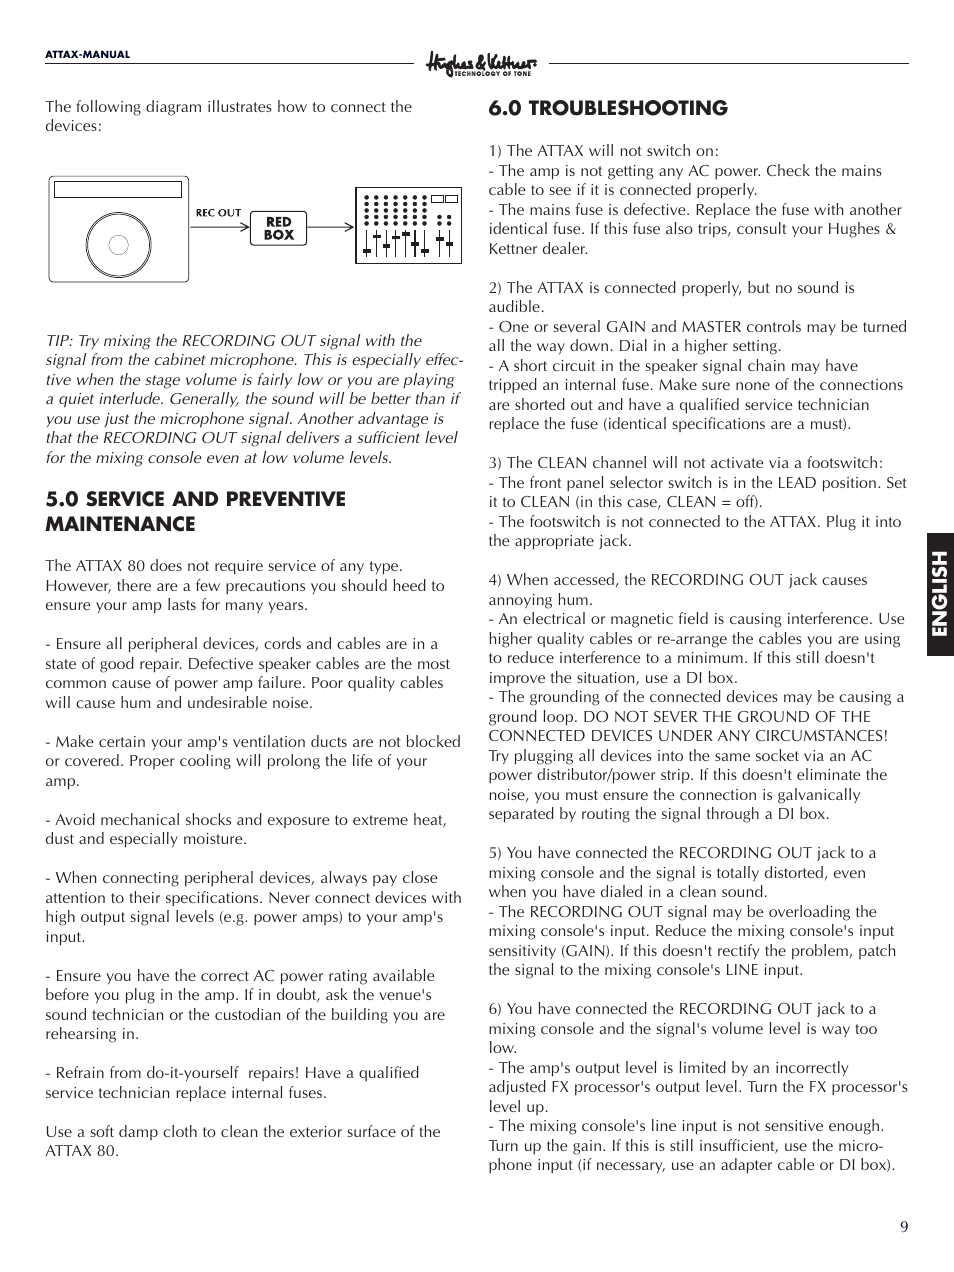 Hughes Kettner Attax 80 User Manual Page 9 36 Electrical Fuses On Red Box